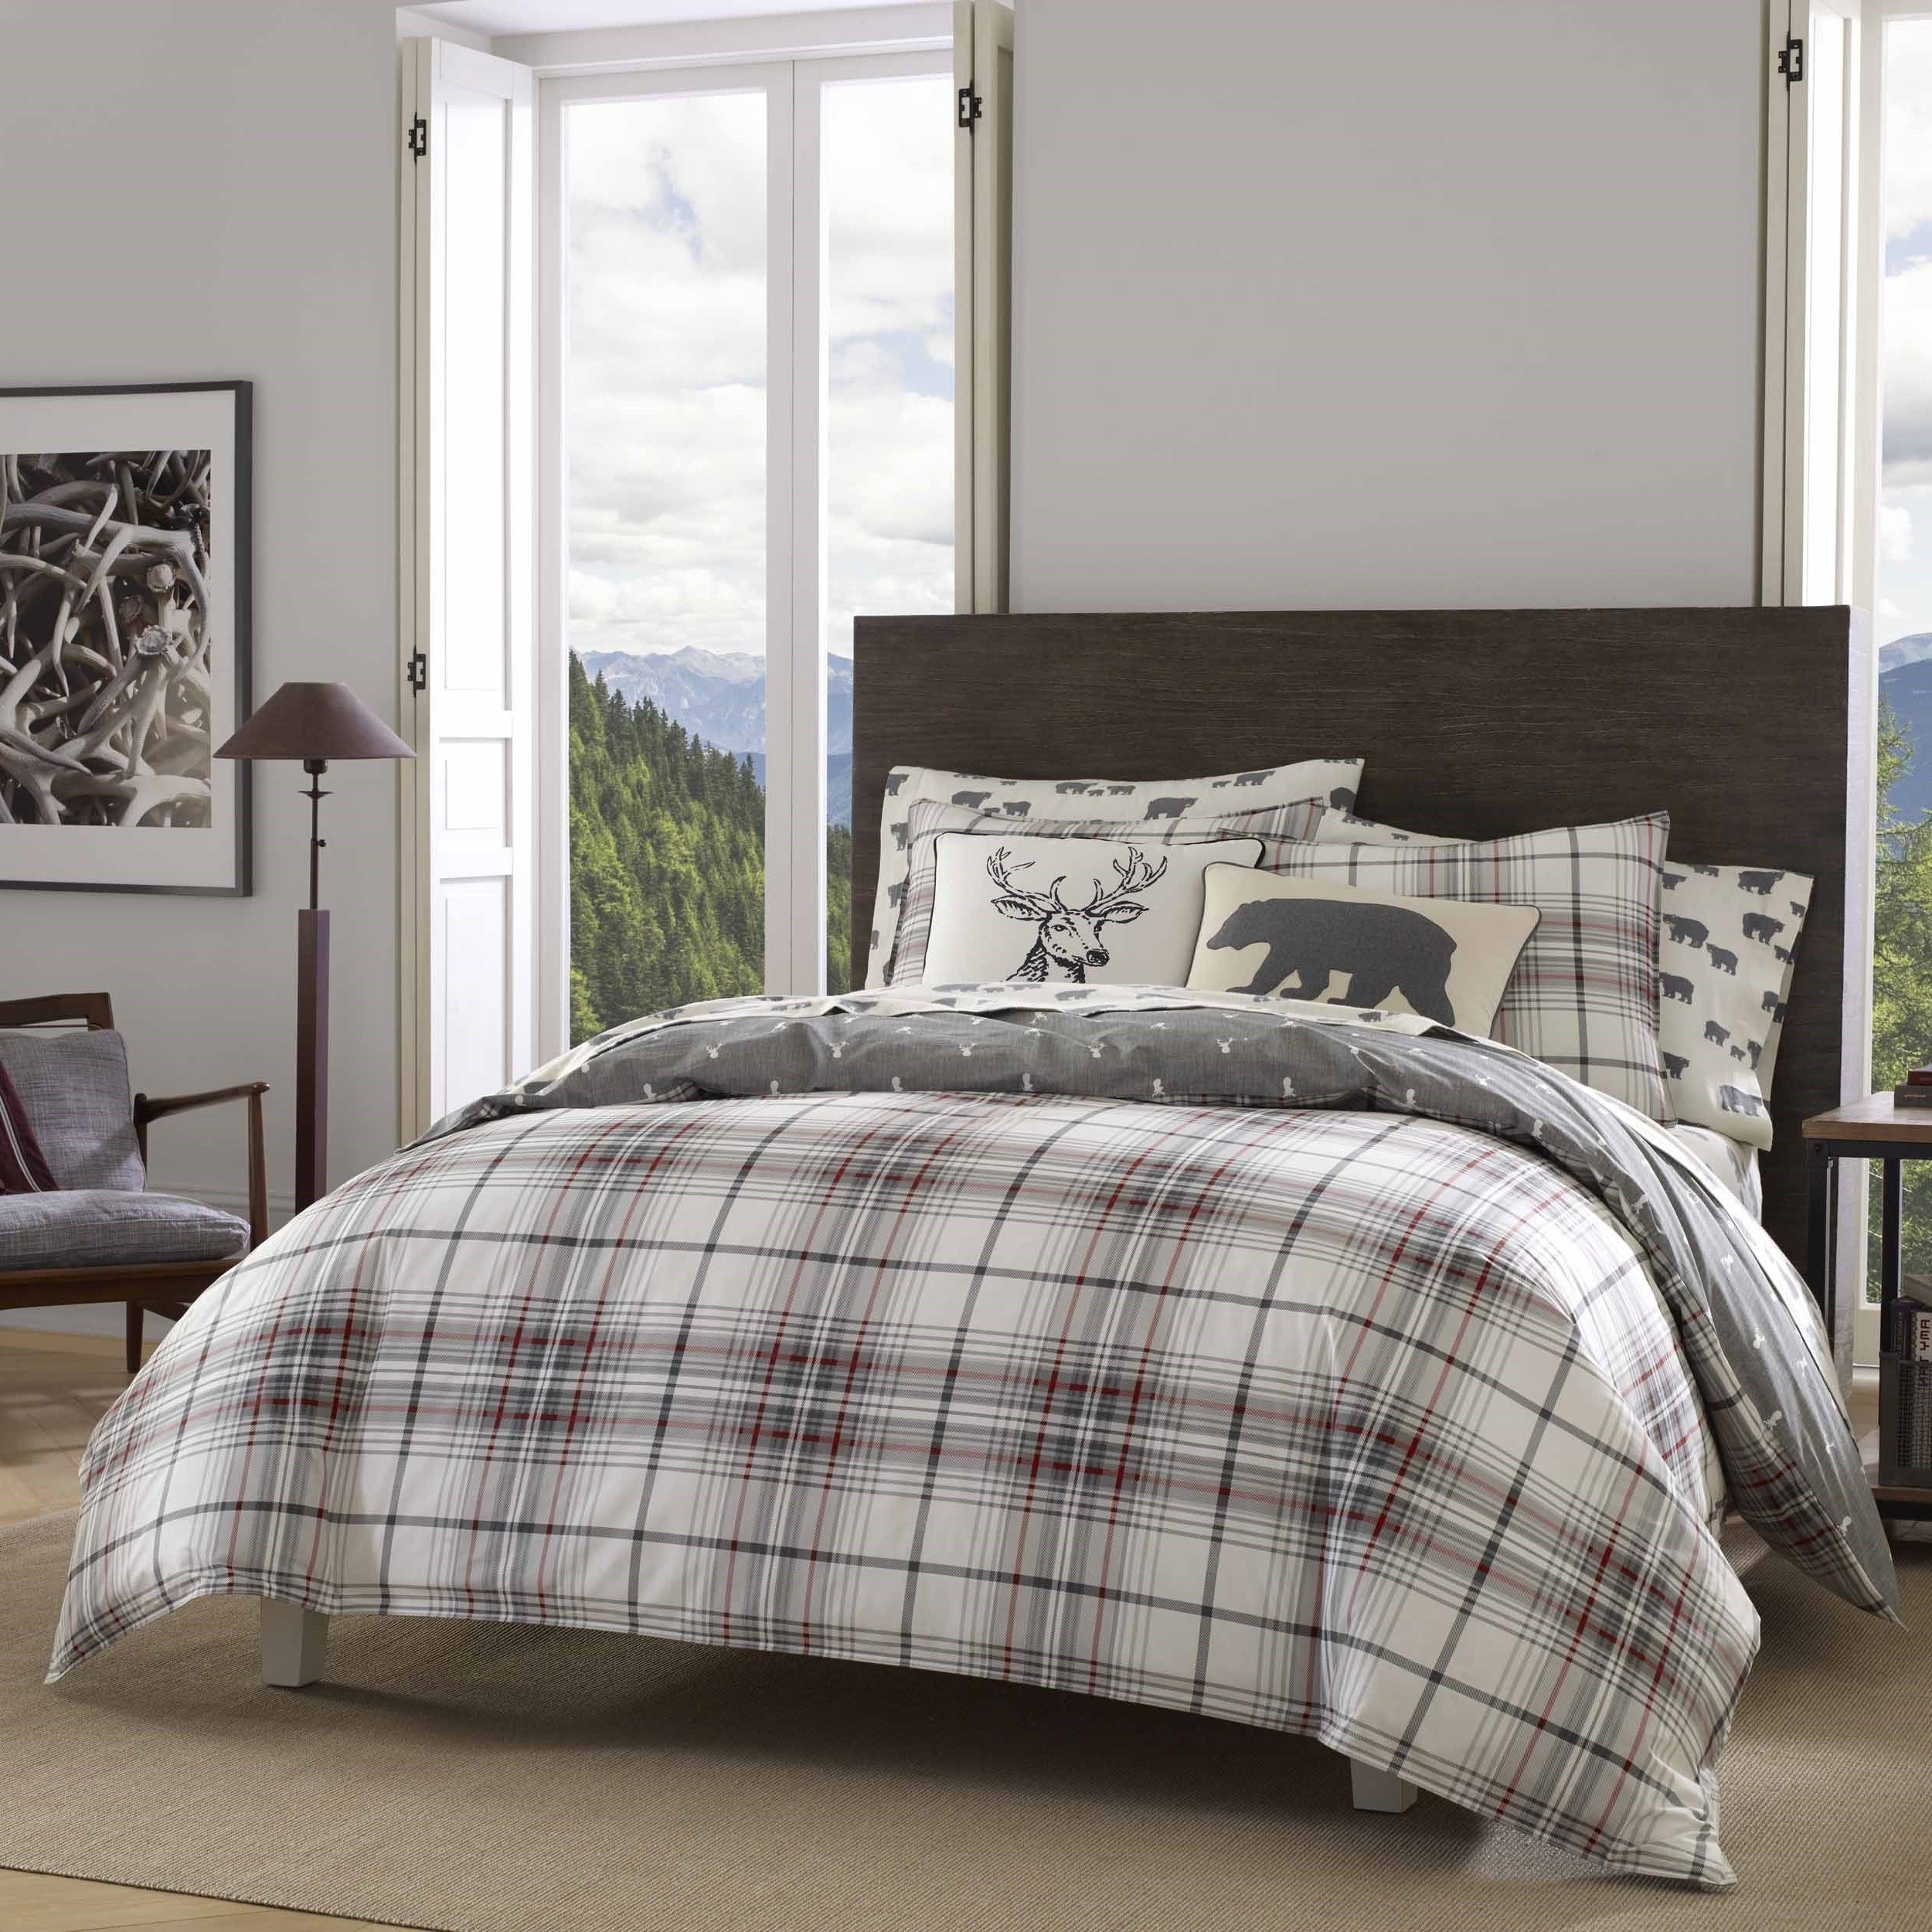 3 Piece Grey Red White Plaid Comforter King Set, Tartan Bedding Checked Buffalo Check Classic Madras Cabin Lodge Lumberjack Hunting, Reversible Deer Pattern Flannel Cotton